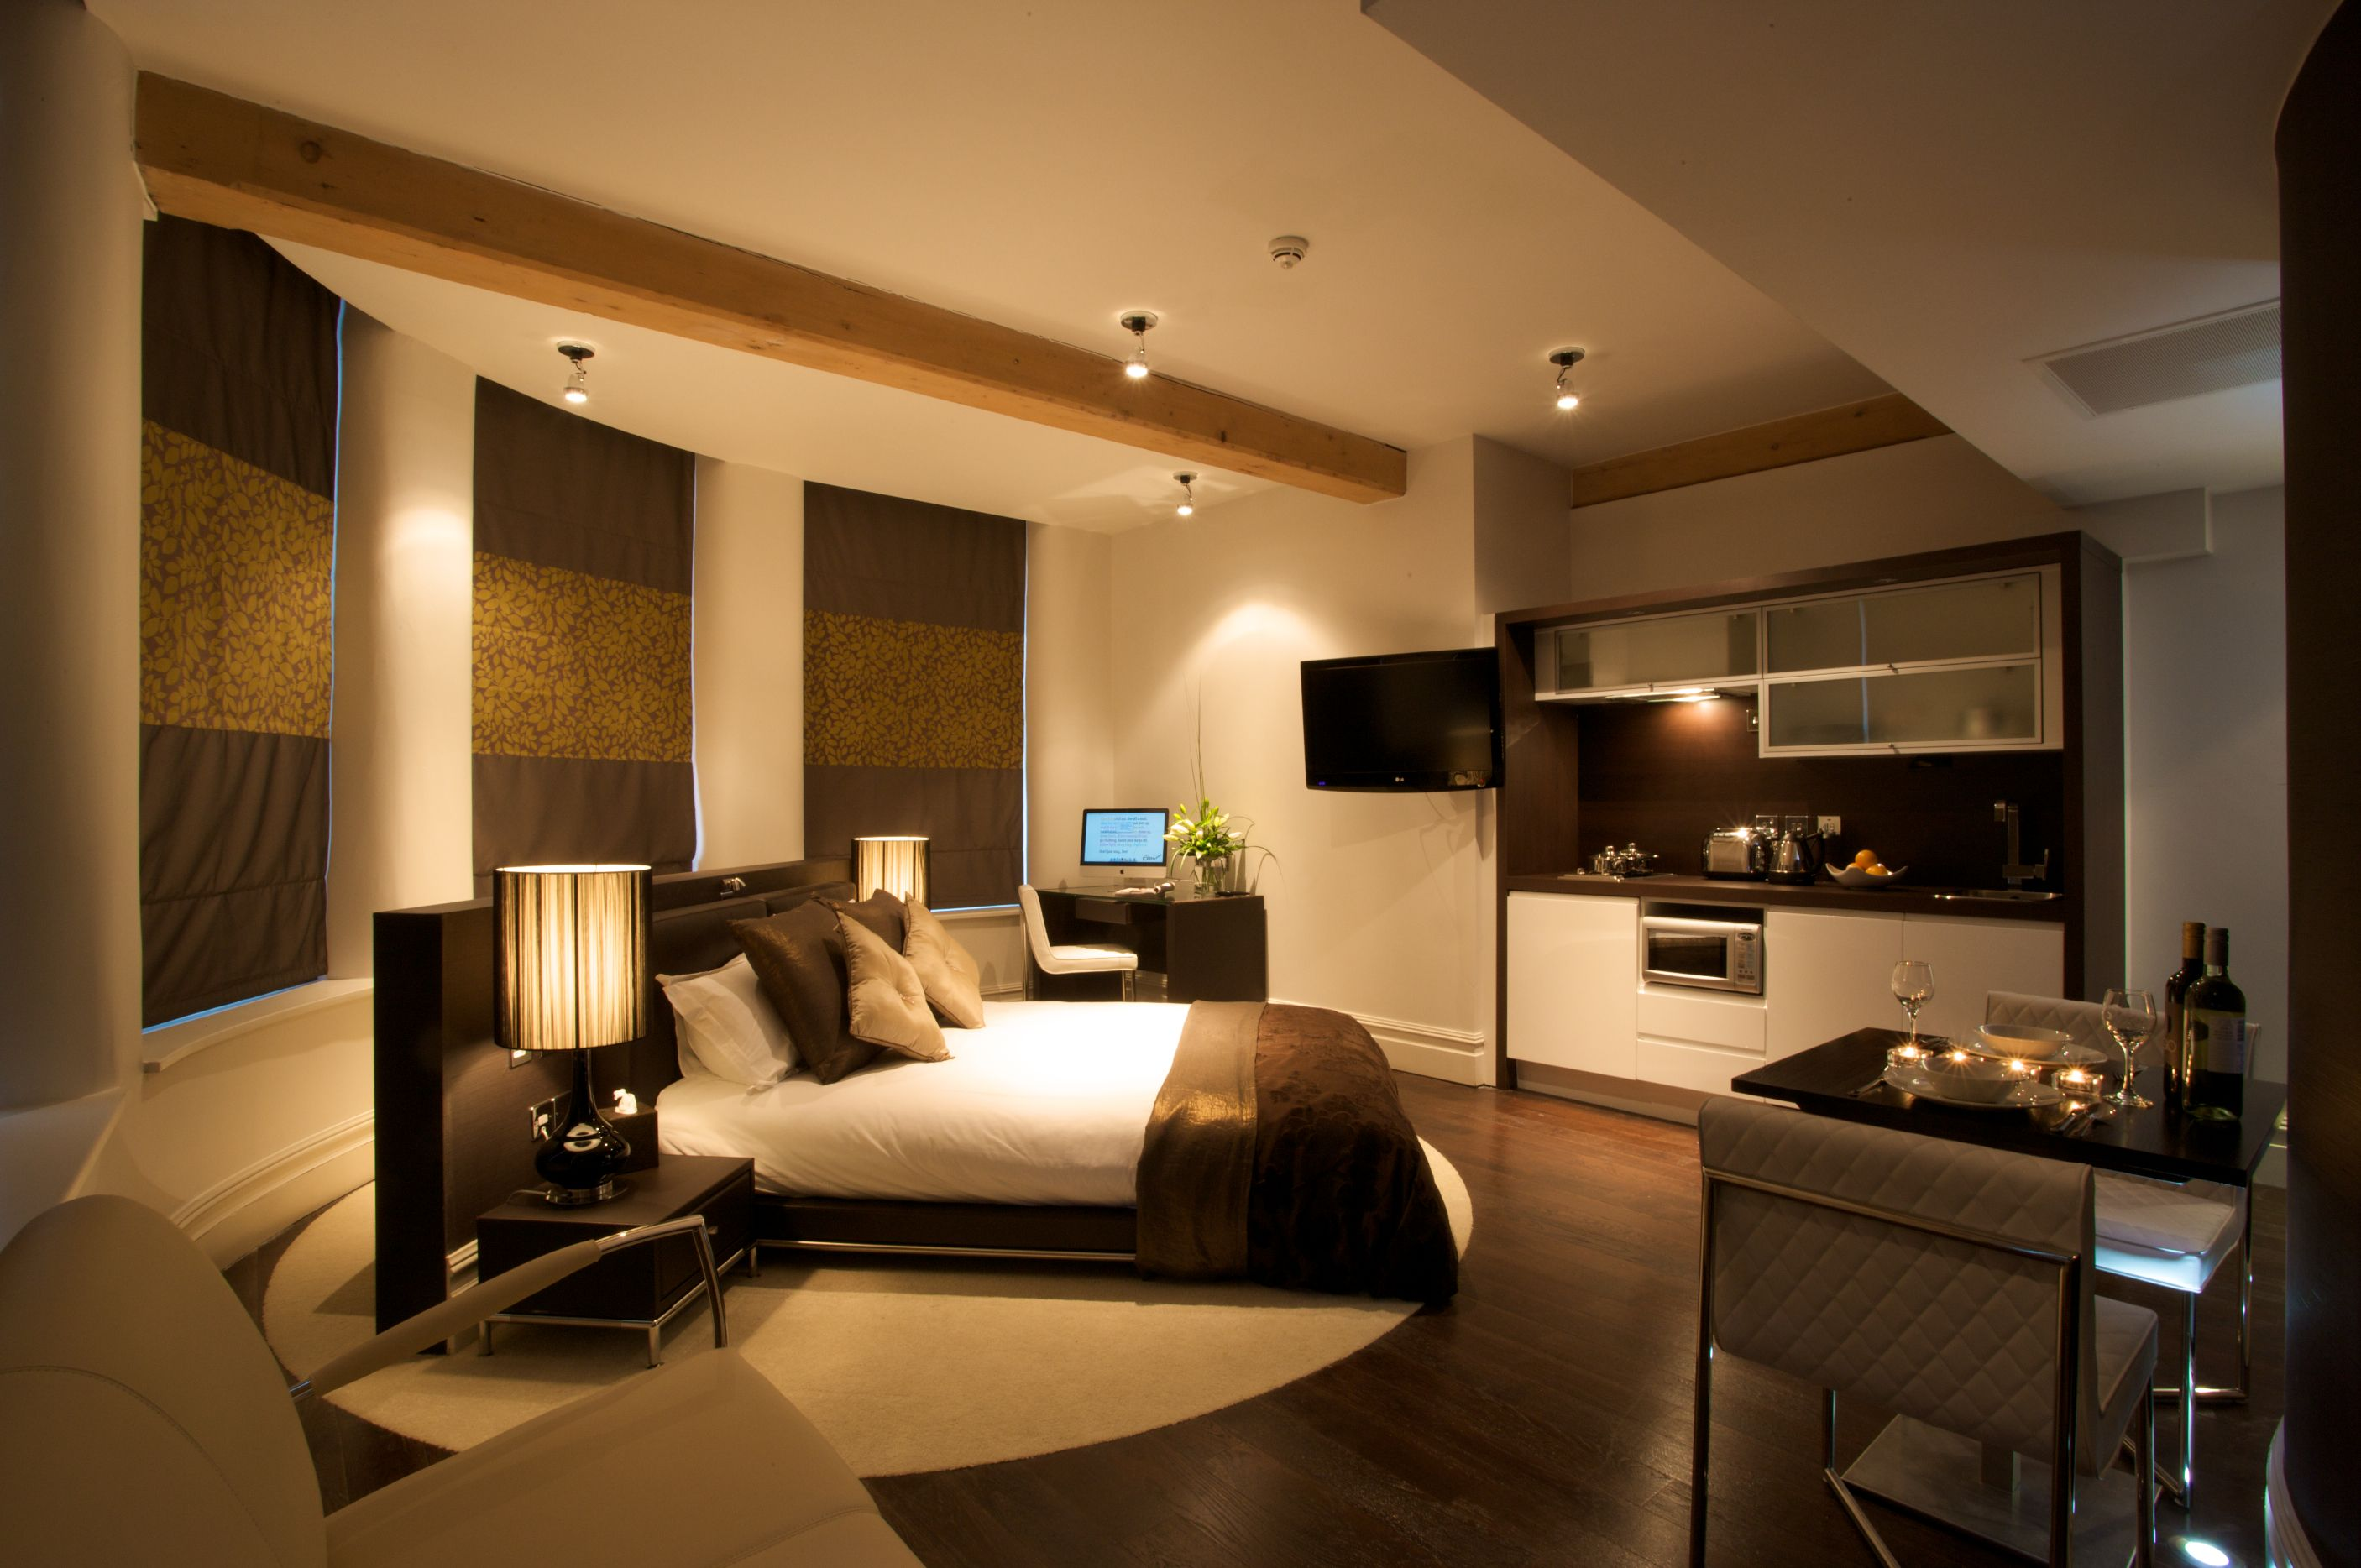 Elegant Hotel In Manchester U0026 Serviced Apartments In Manchester   Roomzzz Aparthotel